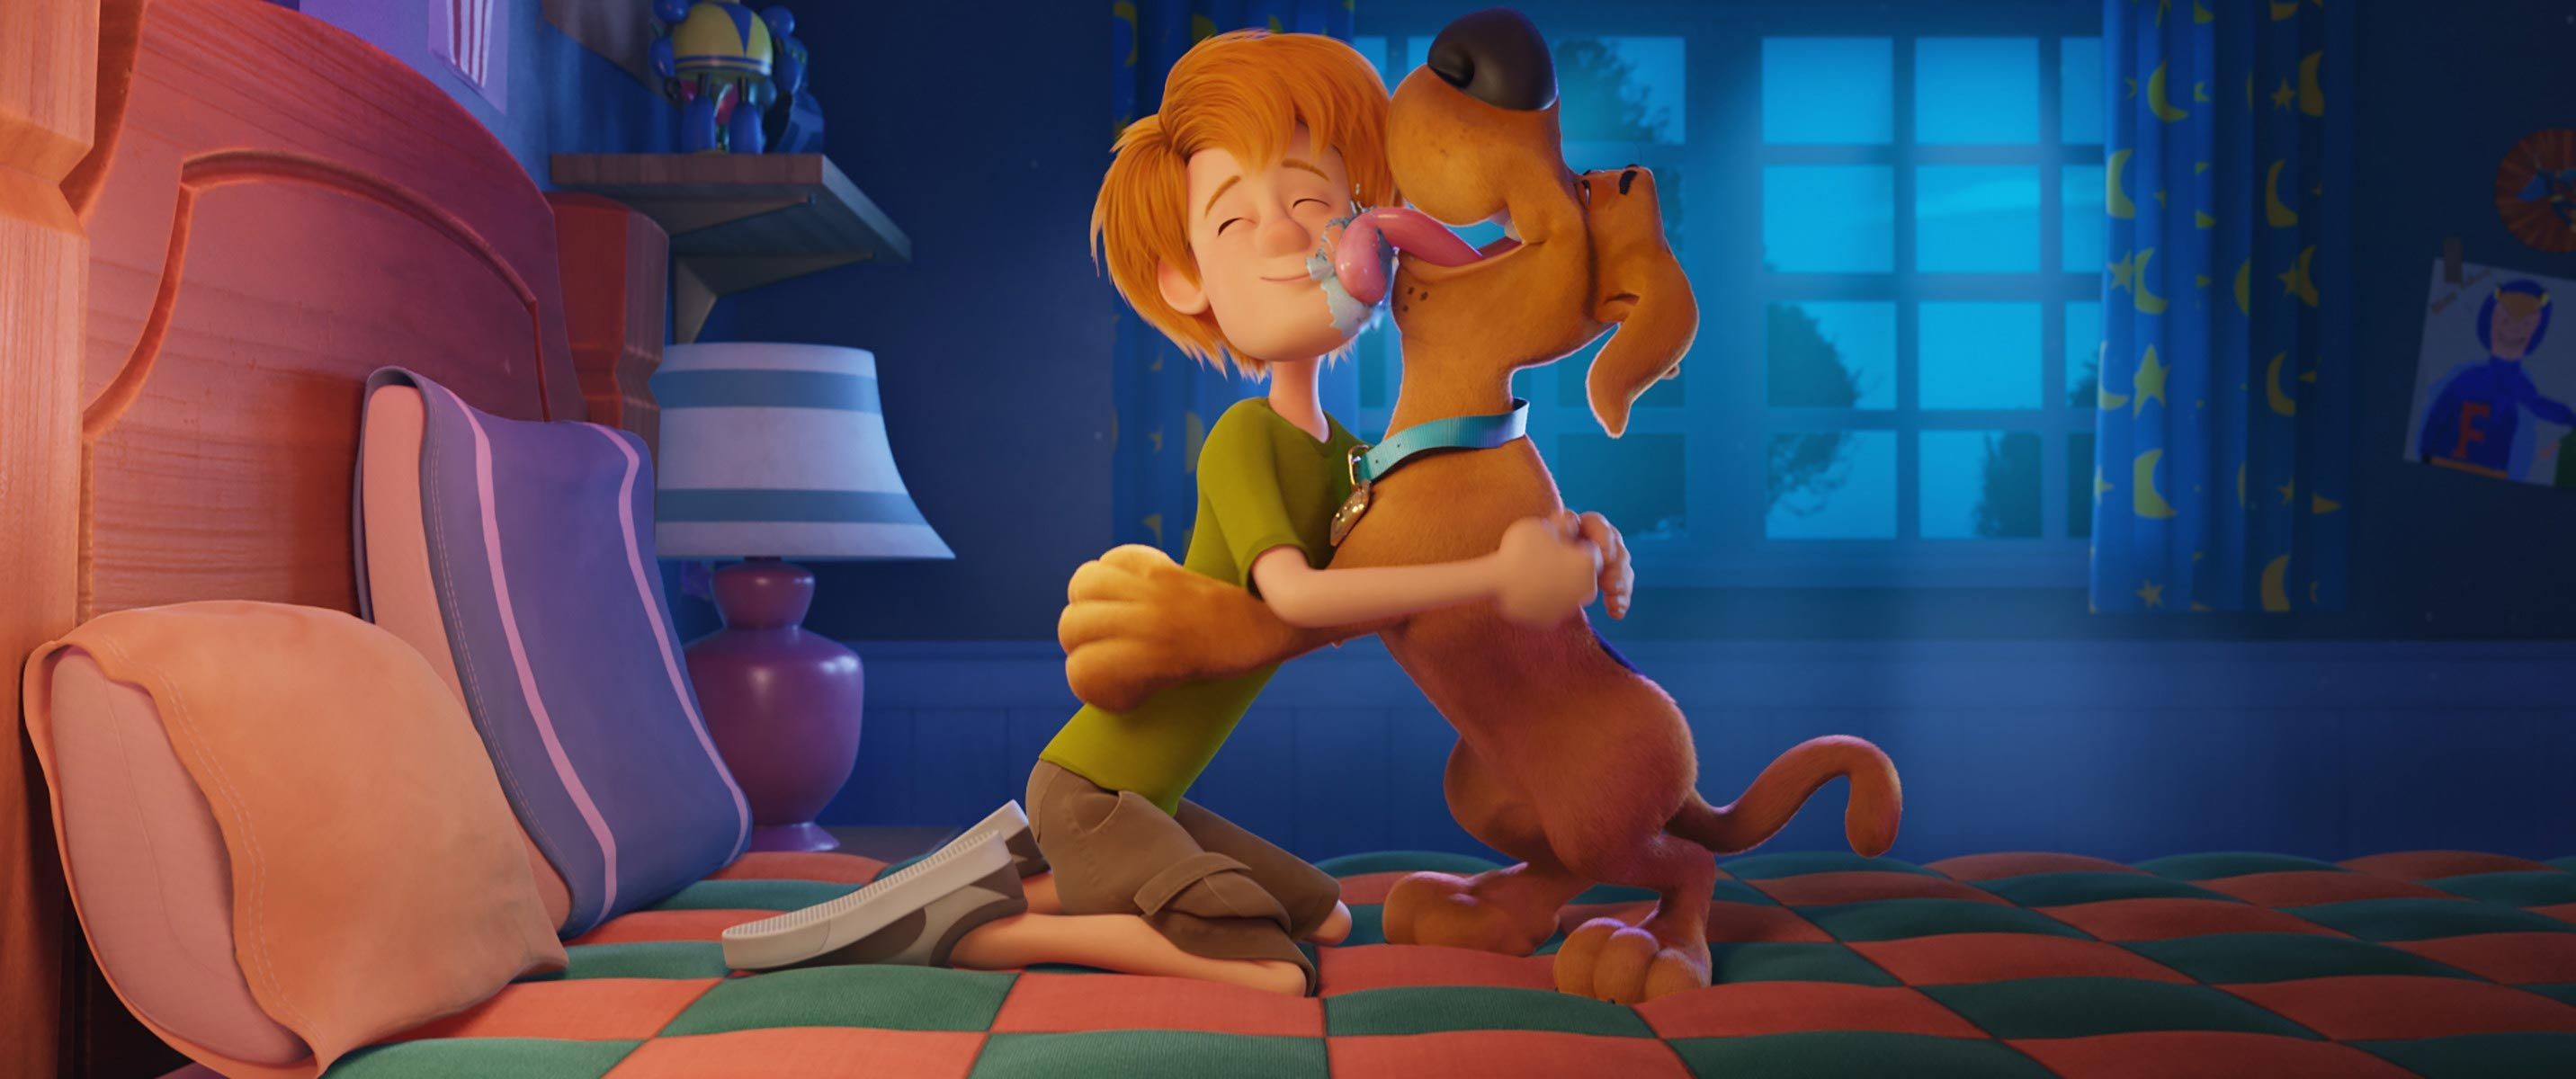 Scoob Movie Trailer Scooby Doo Is Back In New Movie